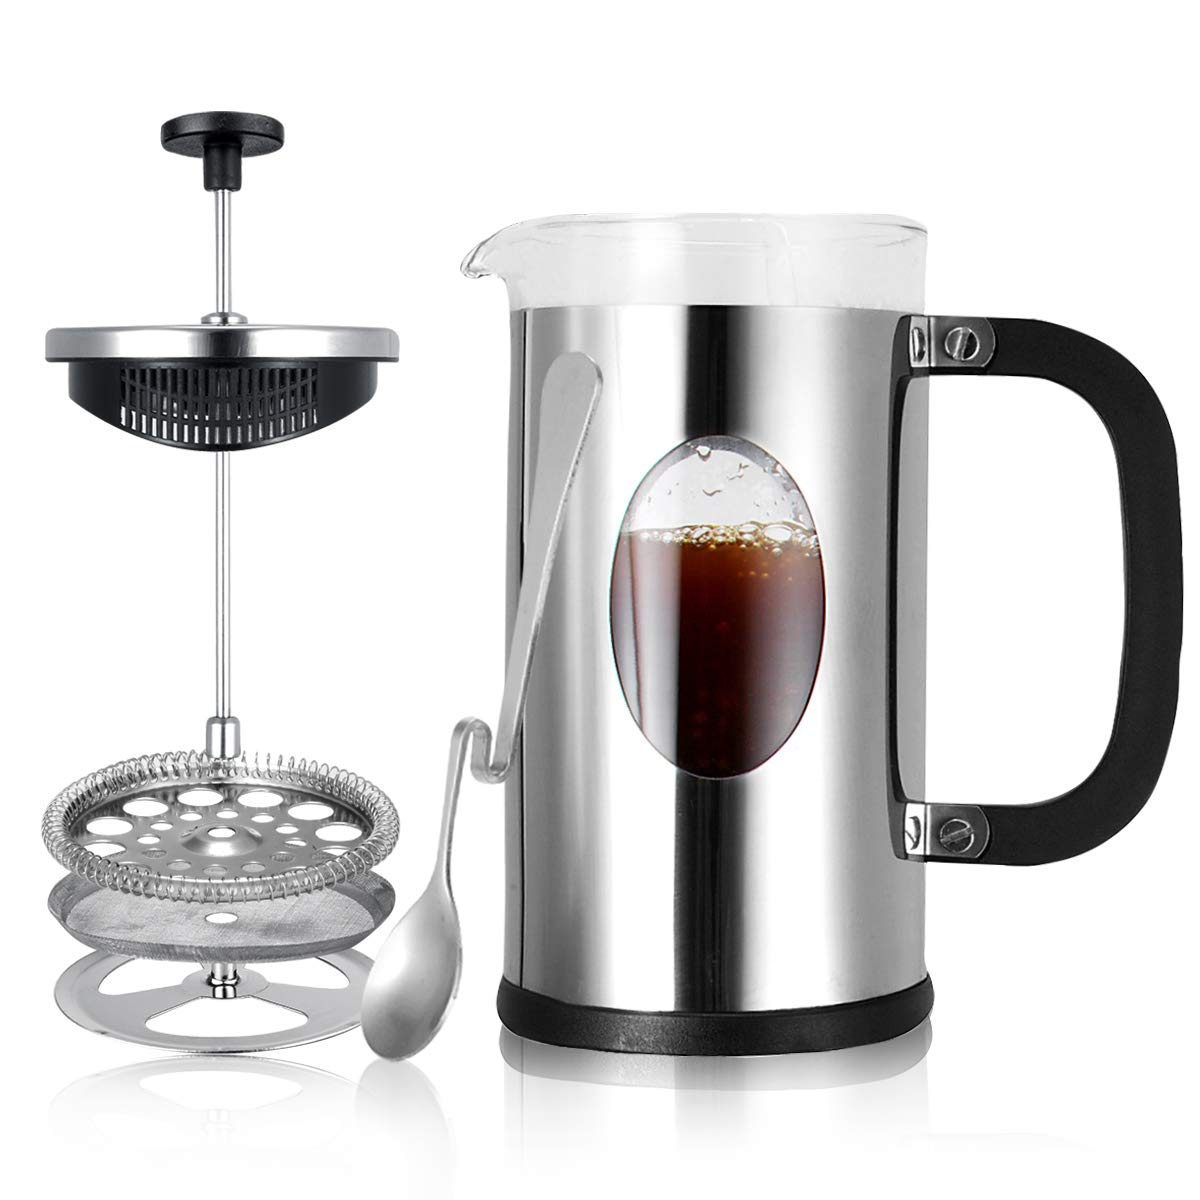 Cusimax Gooseneck Electric Kettle Variable Temperature, 4-Cup Pour Over Kettle for Drip Coffee and Tea, BPA-Free Electric Tea Kettle Stainless Steel, Keep Warm Water Kettle, CMCK-100E, 1L